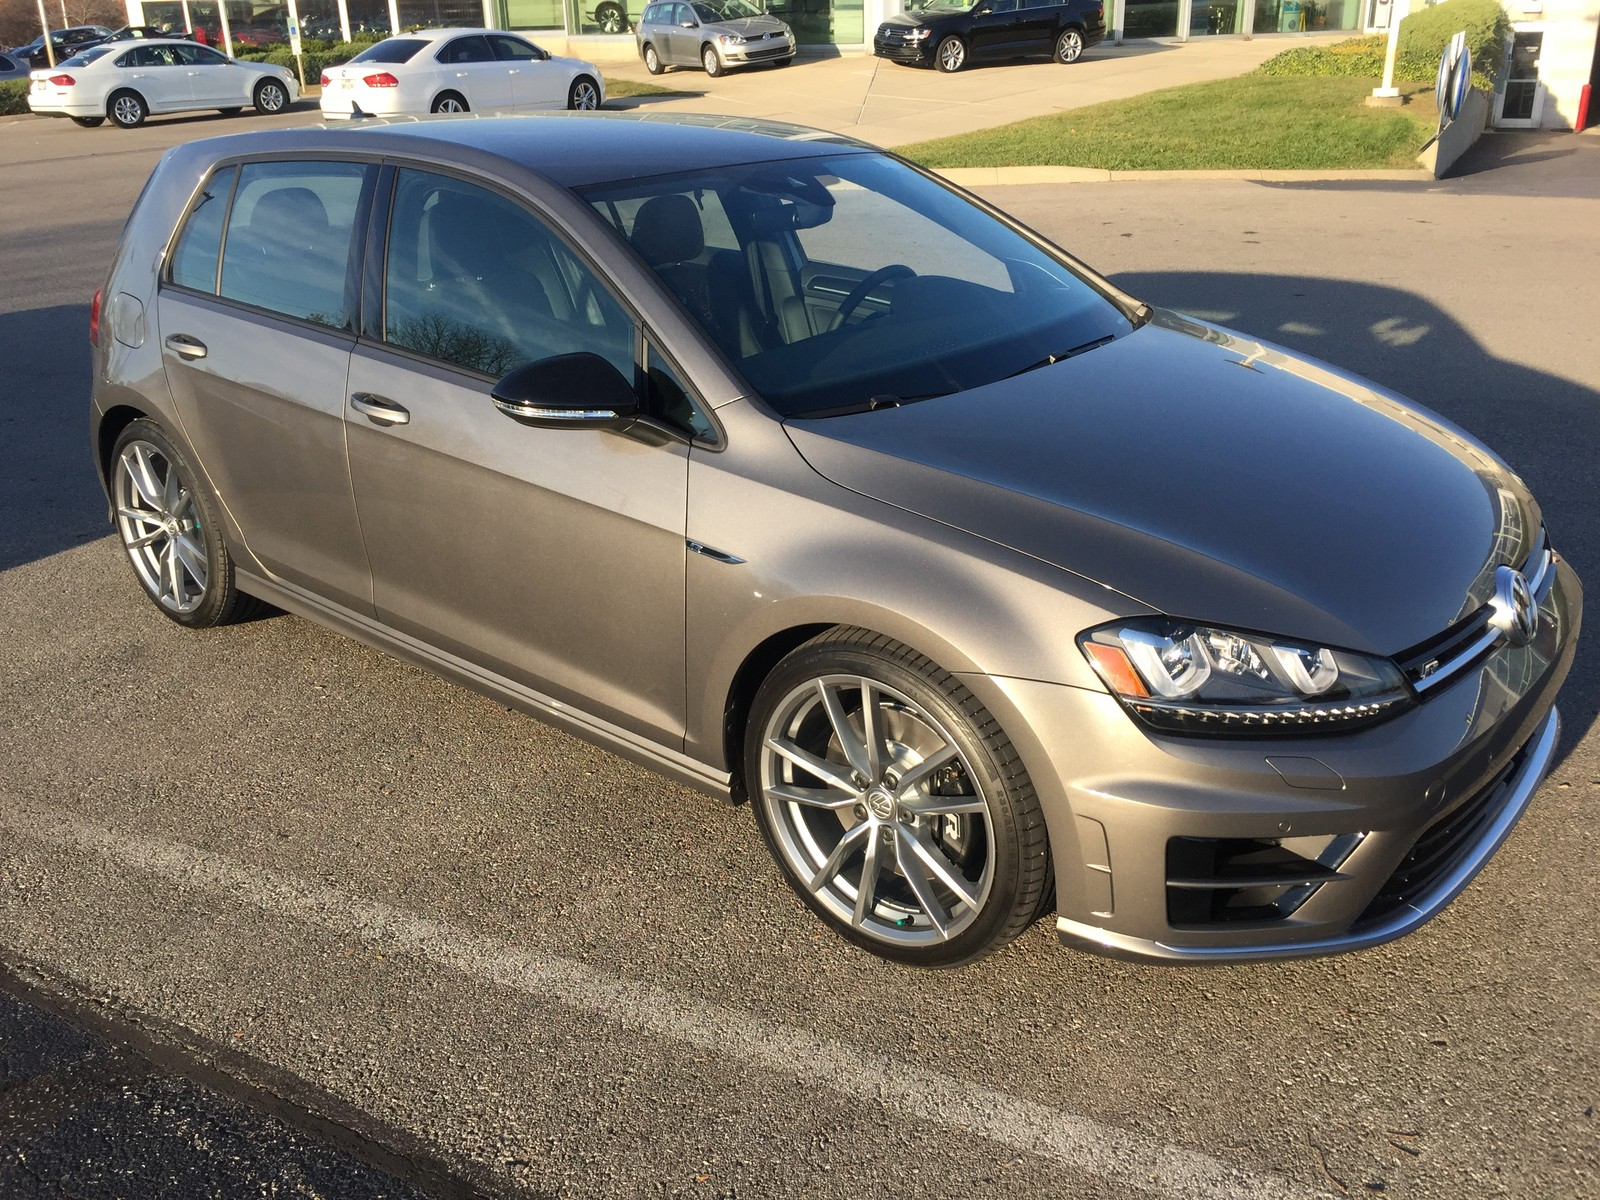 Golf R 0-60 >> Stock 2017 Volkswagen Golf R Dsg 1 4 Mile Trap Speeds 0 60